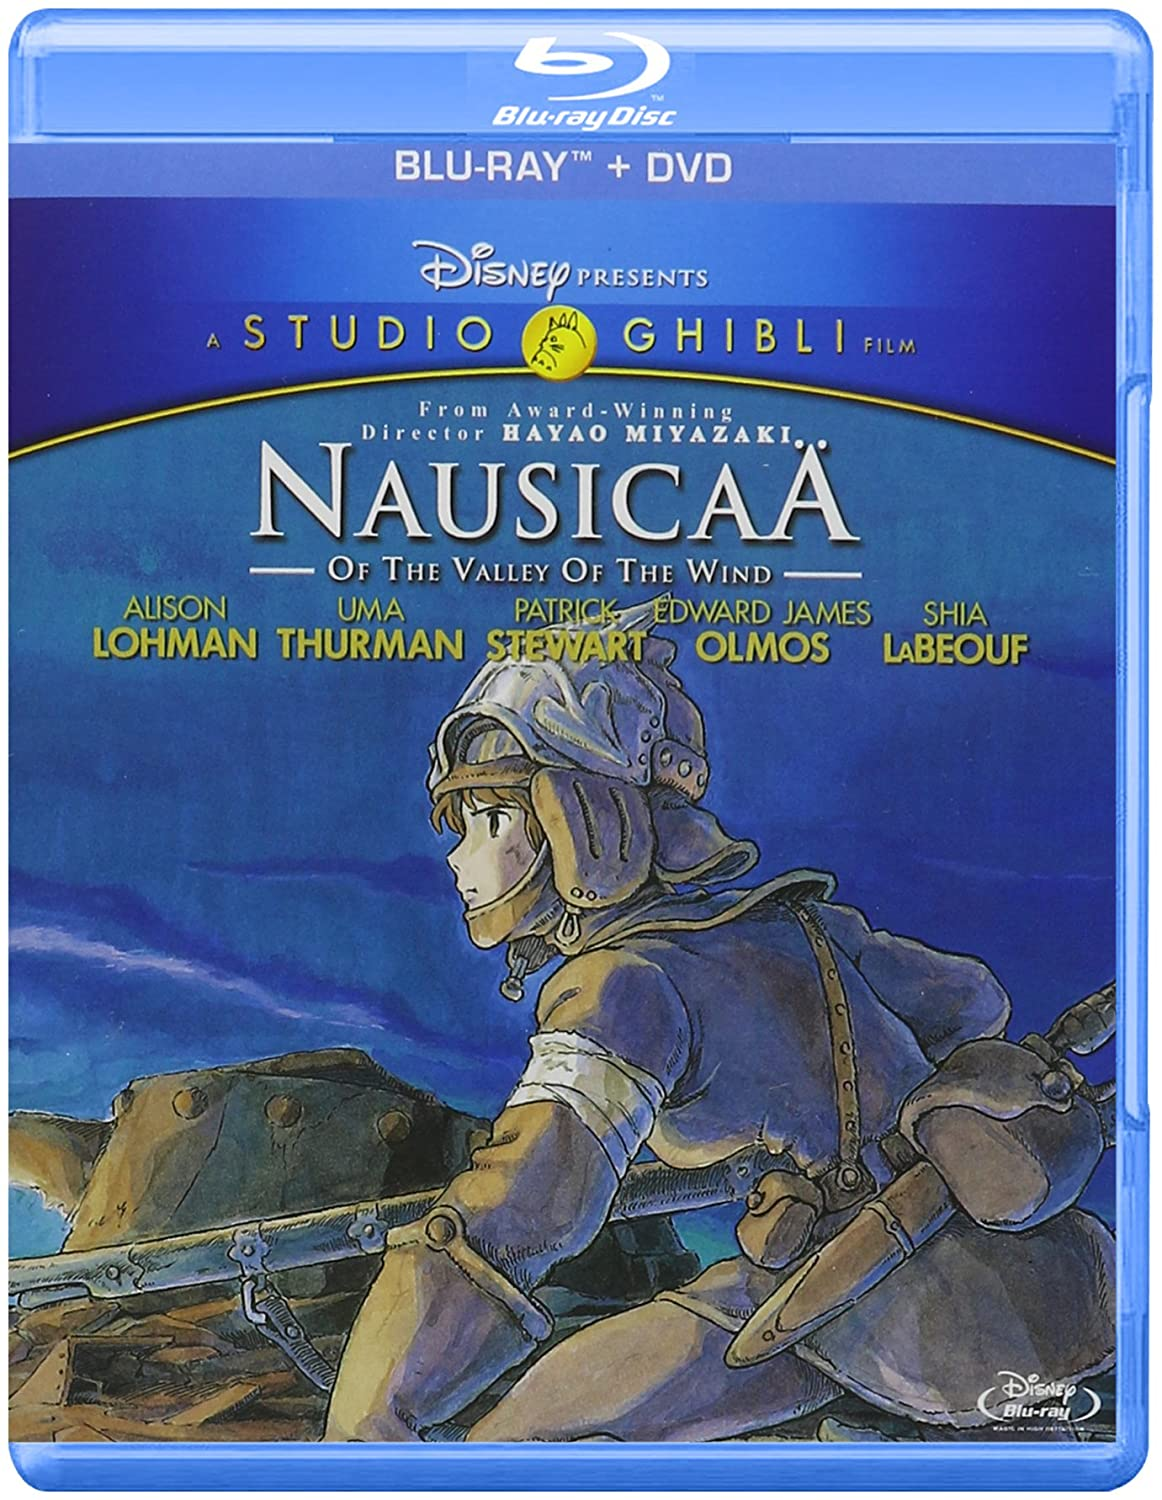 YESASIA: Nausicaa Of The Valley Of The Wind (DVD) (US Version) DVD ...